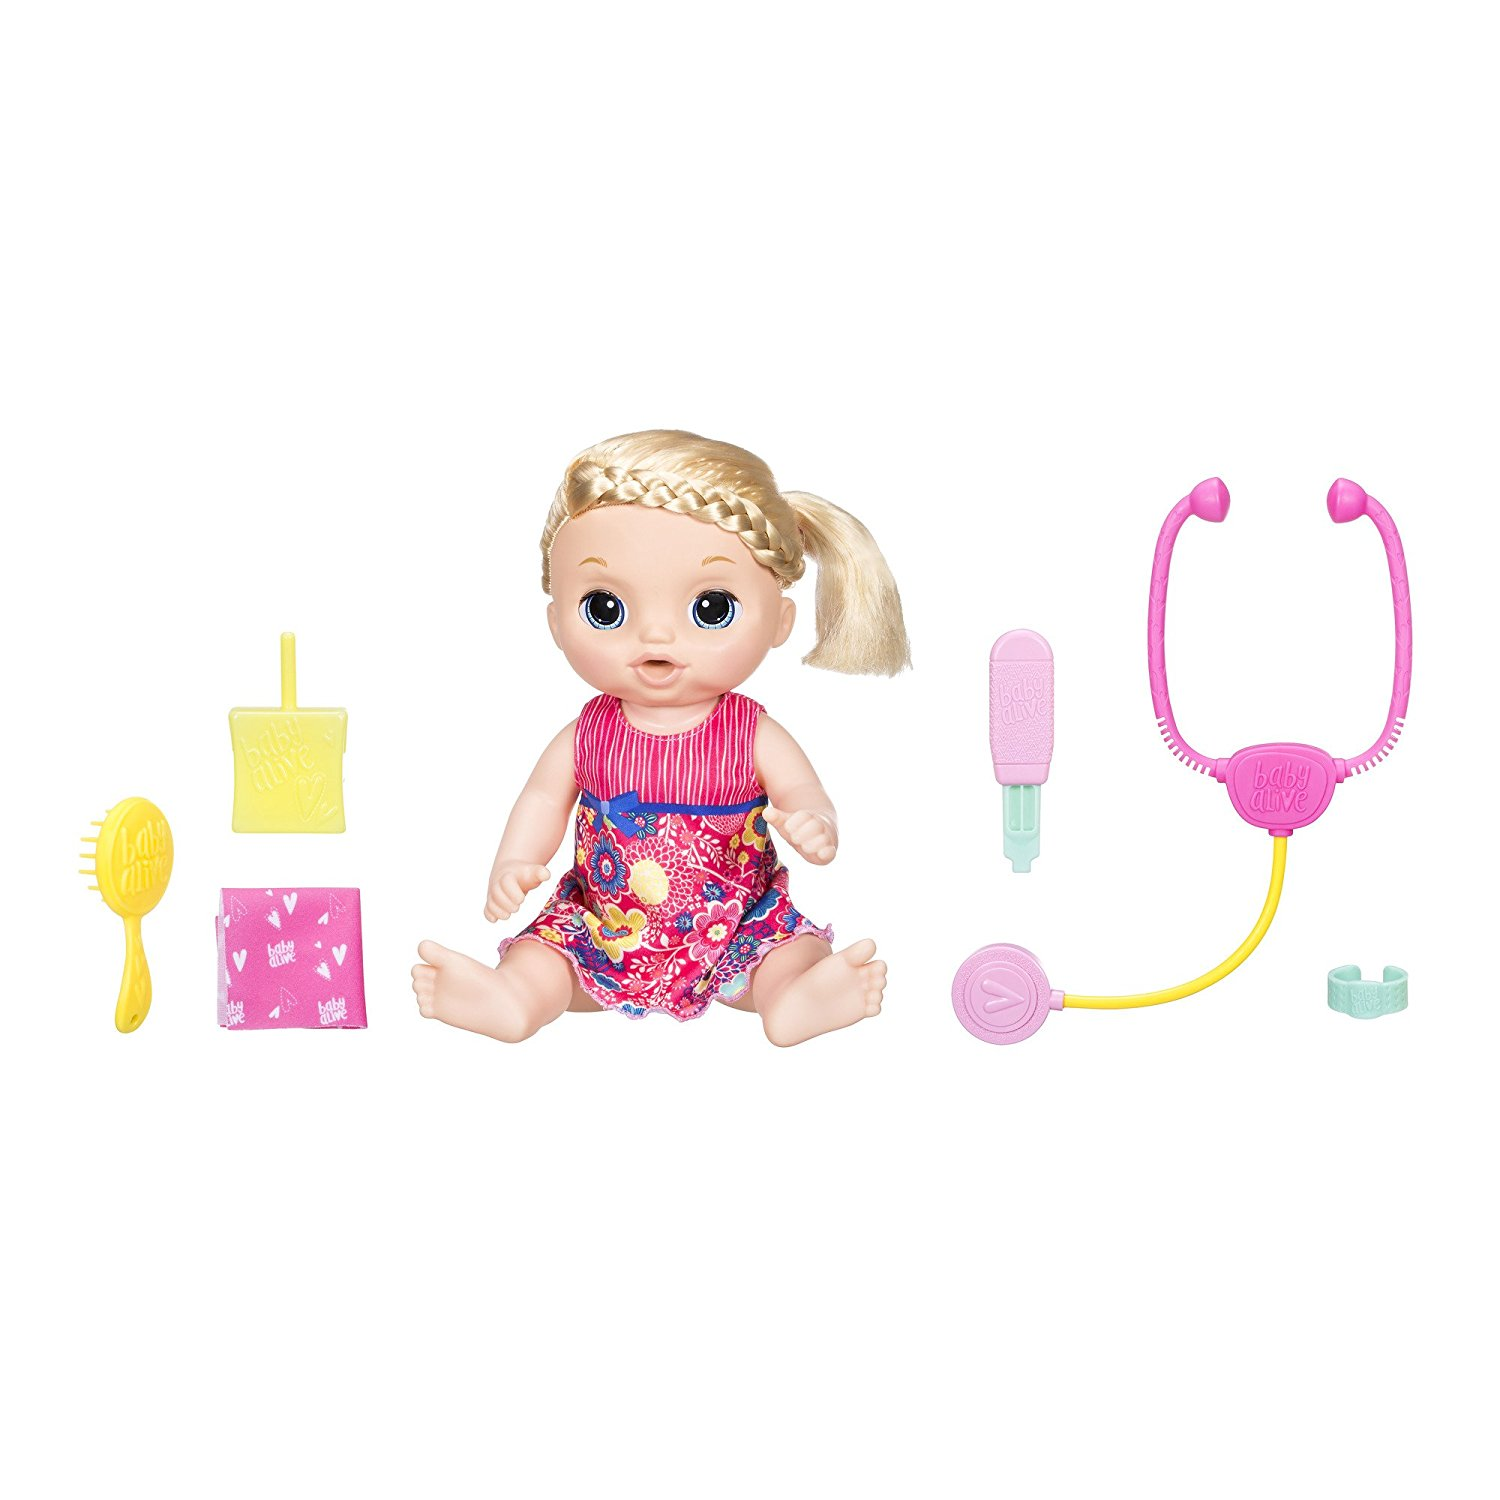 Baby Alive Sweet Tears Baby Doll (Blonde)-girl toys, kids otys, girls dolls, boy dolls, baby alive dolls, gifts for girls